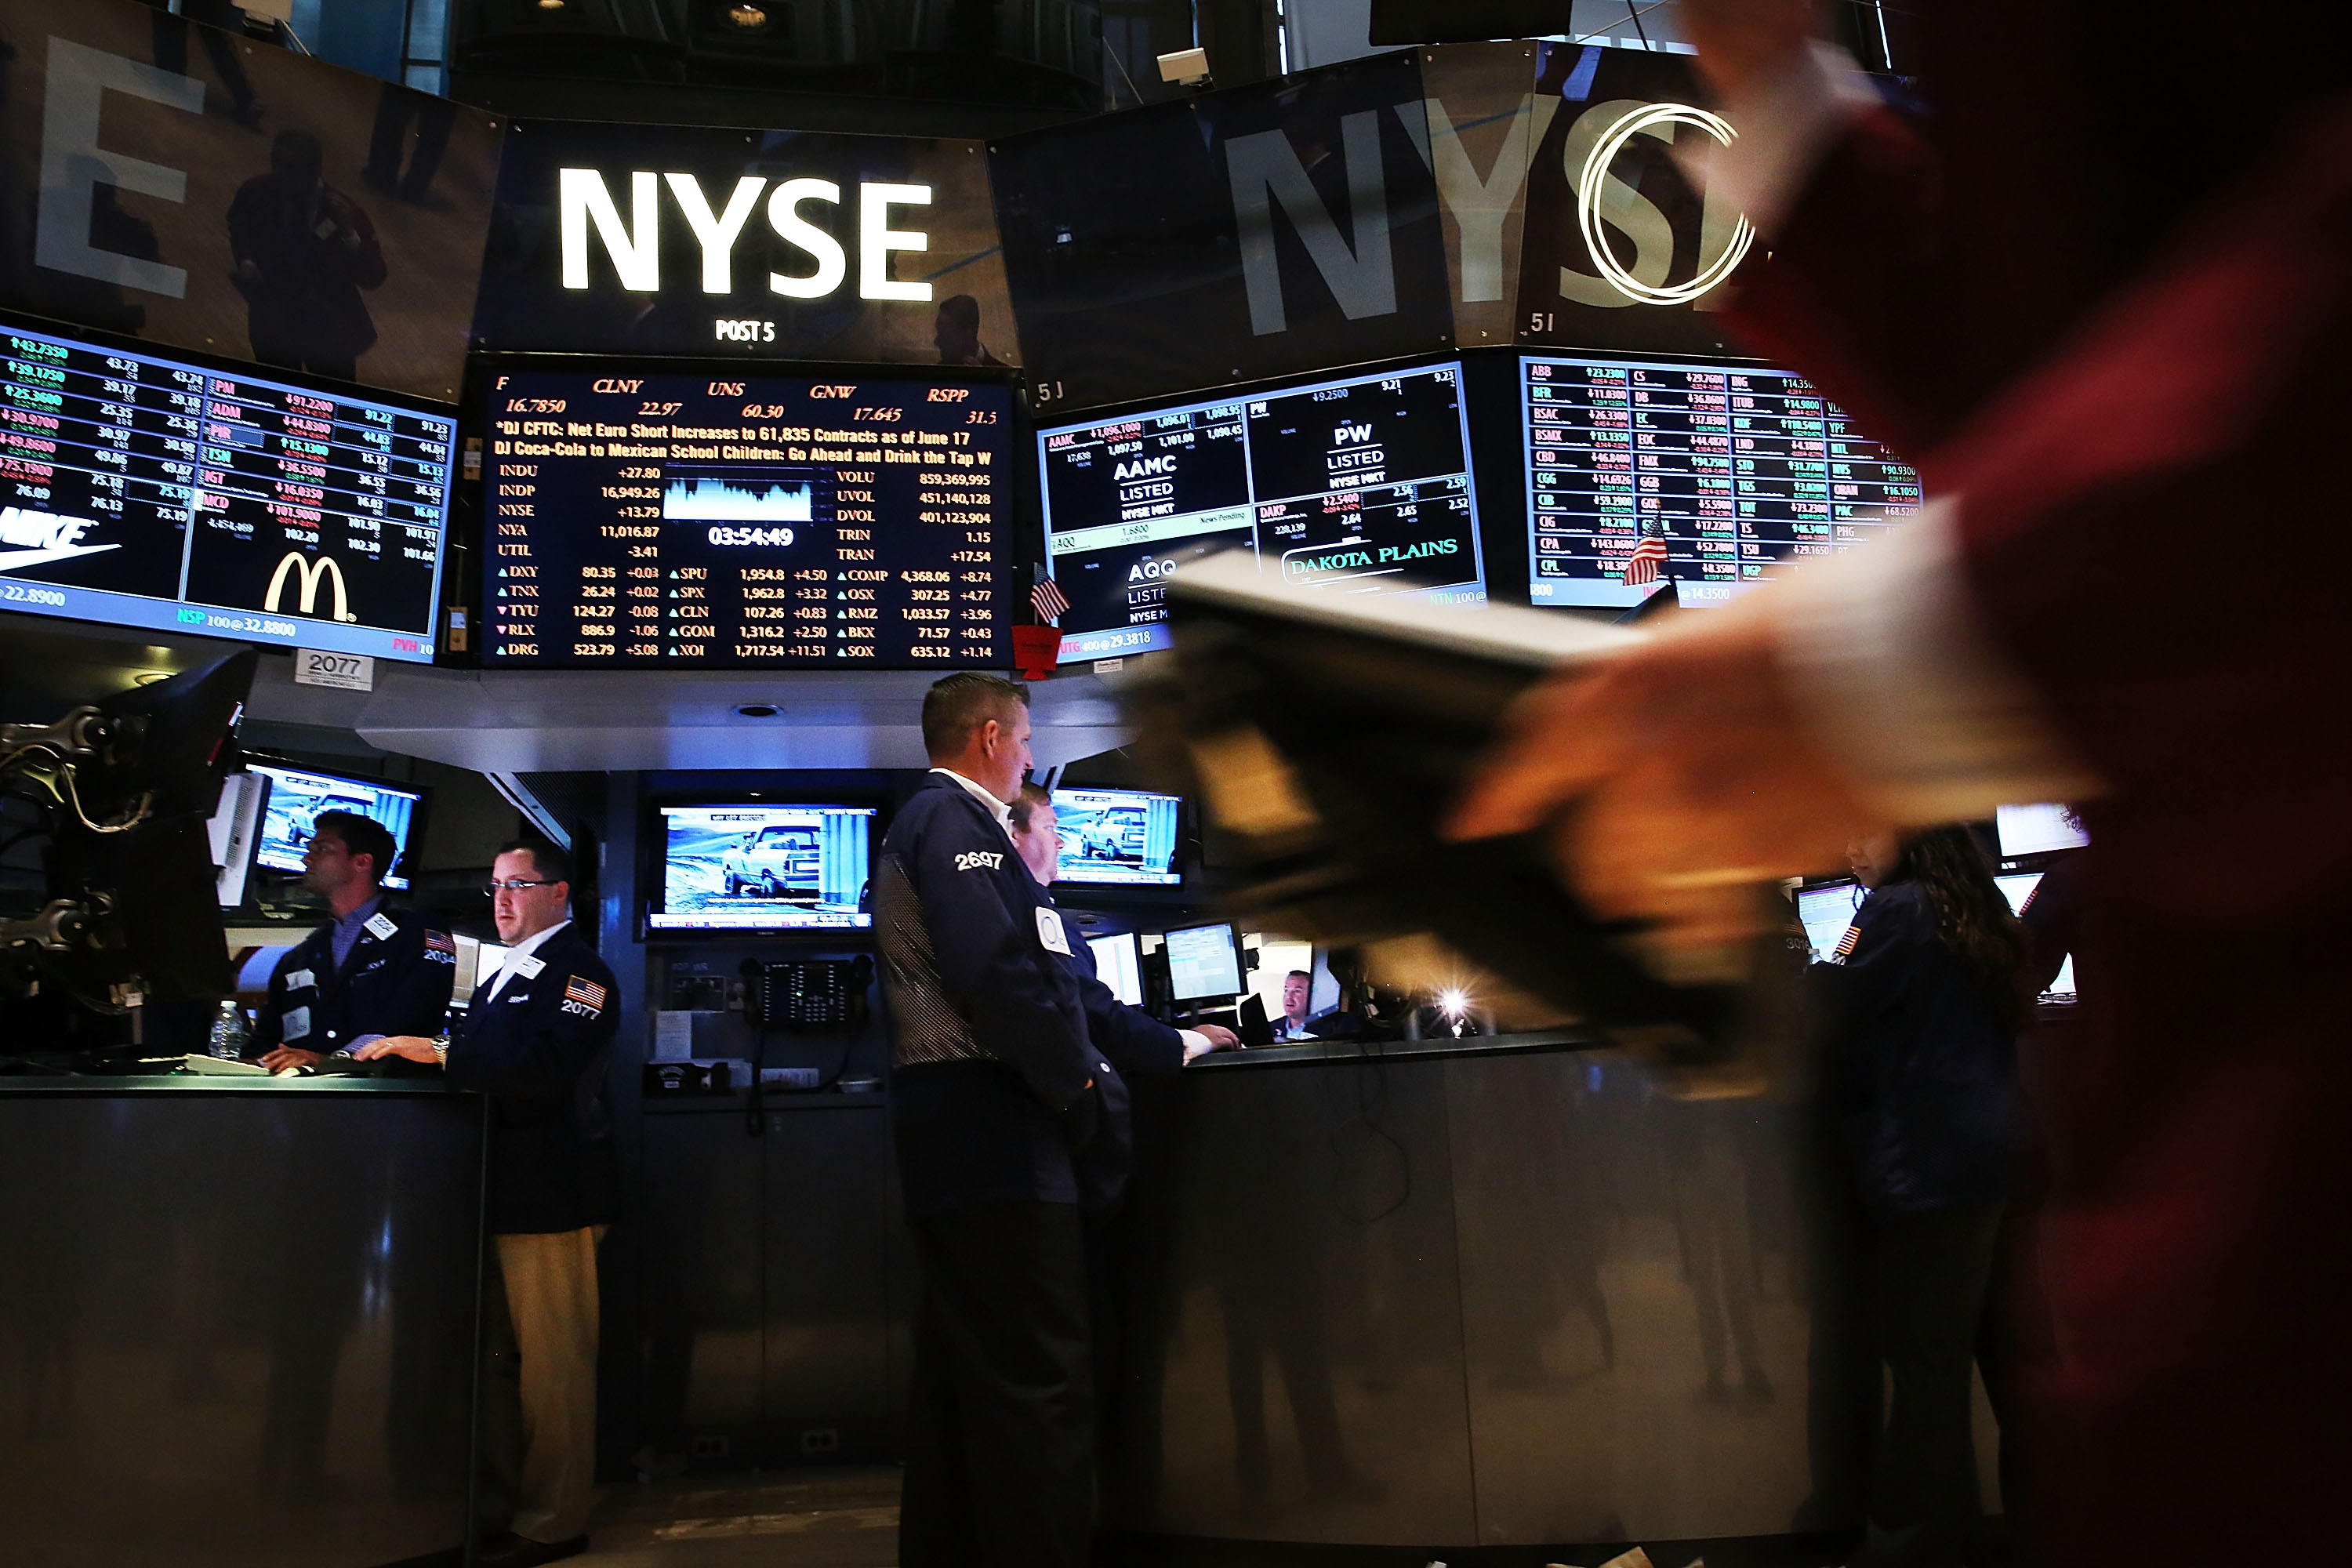 Traders work on the floor of the New York Stock Exchange (NYSE) on June 20, 2014 in New York City.